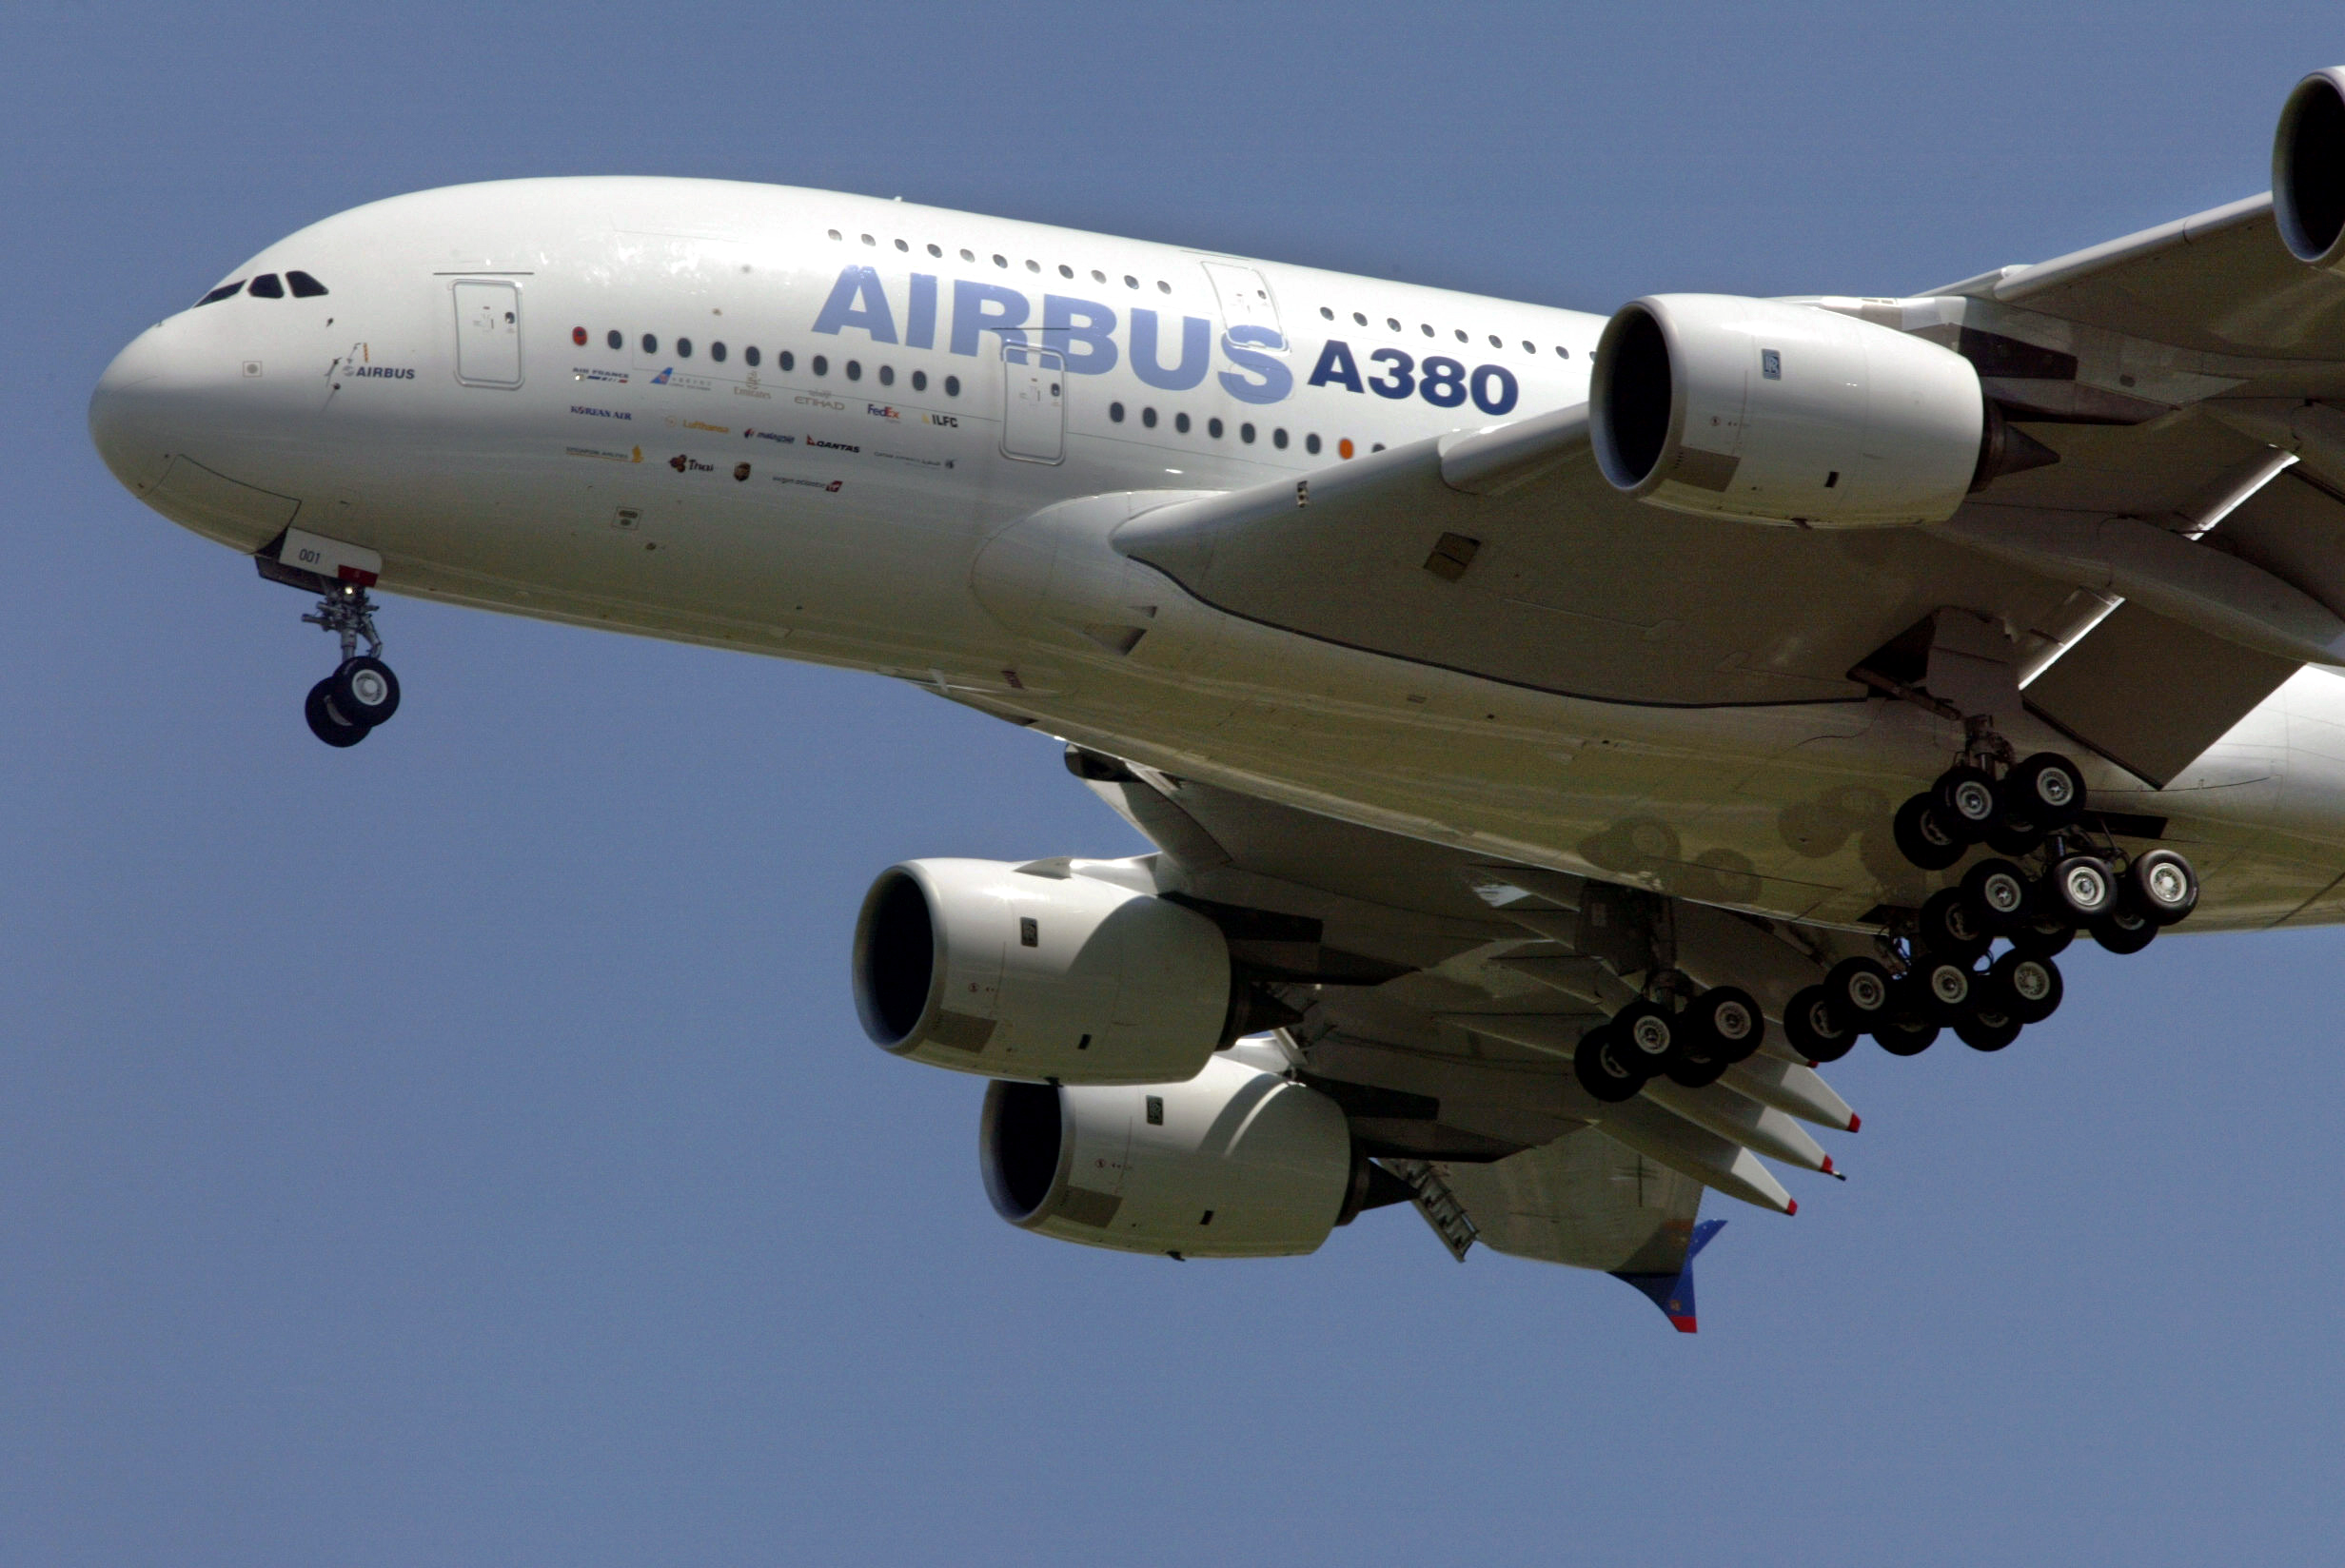 The giant double-decker Airbus A380, the